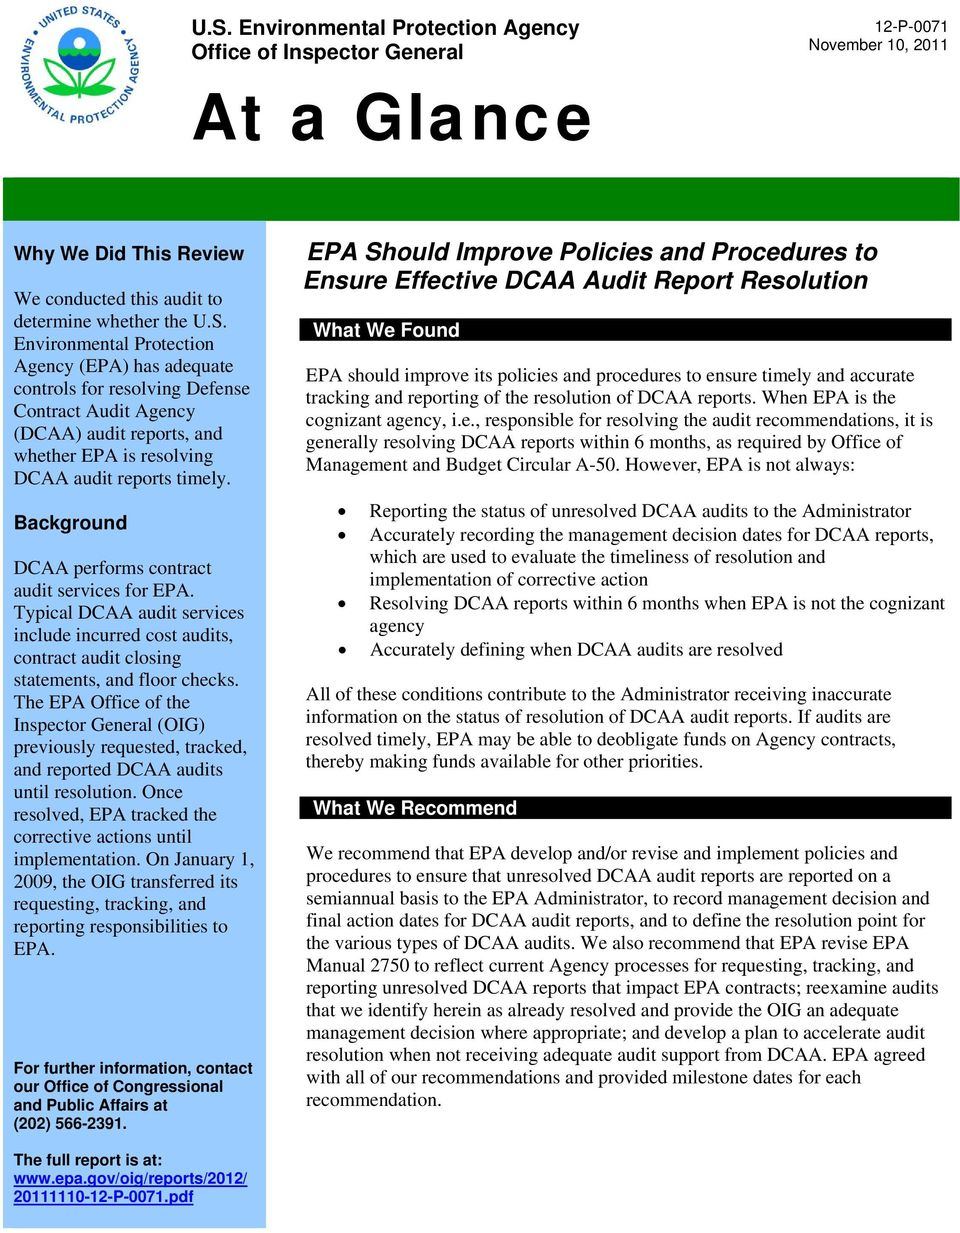 The EPA Office of the Inspector General (OIG) previously requested, tracked, and reported DCAA audits until resolution. Once resolved, EPA tracked the corrective actions until implementation.